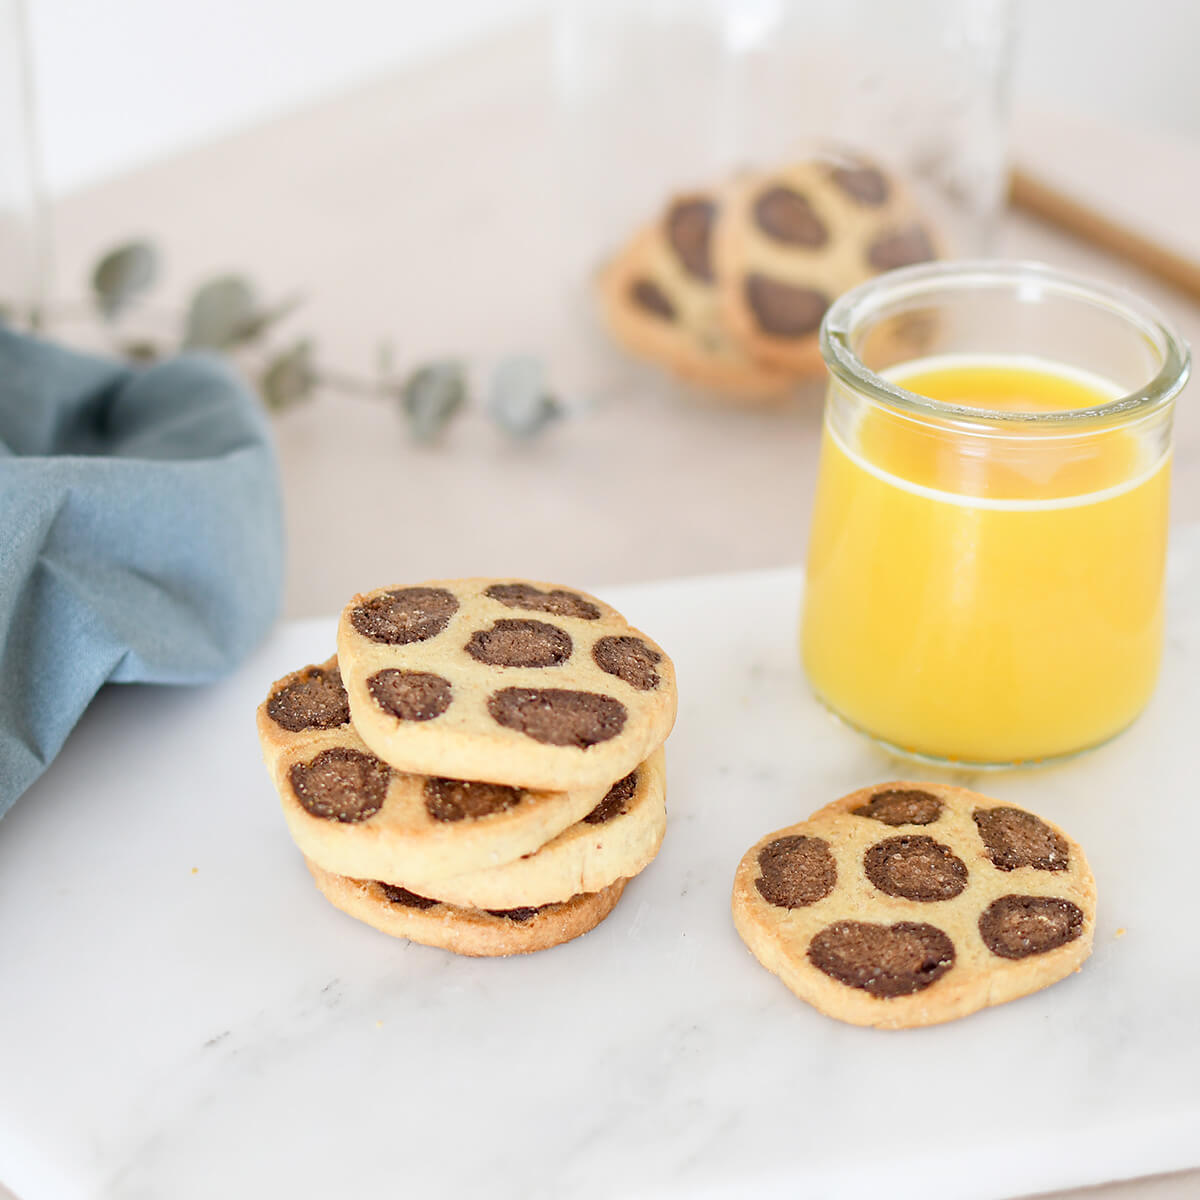 Here's our leopard shortbread recipe, follow the guide for a fun pastry workshop with your kids.